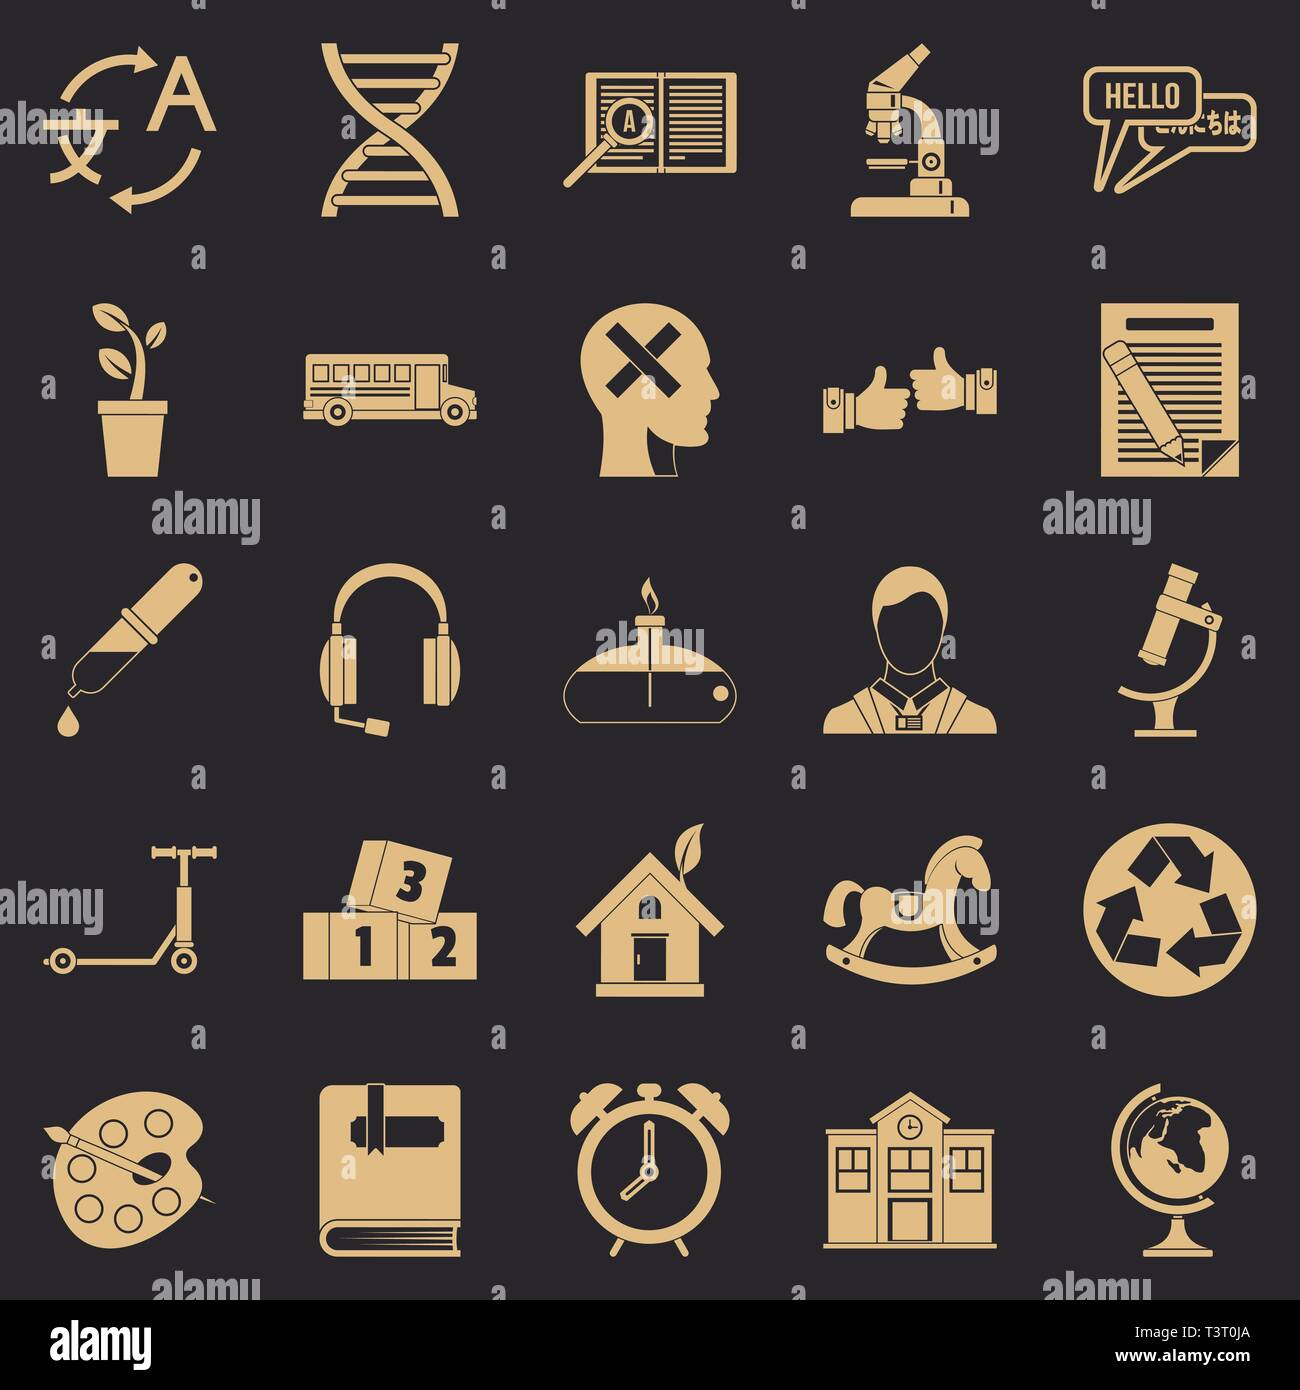 New discoveries icons set, simple style - Stock Vector